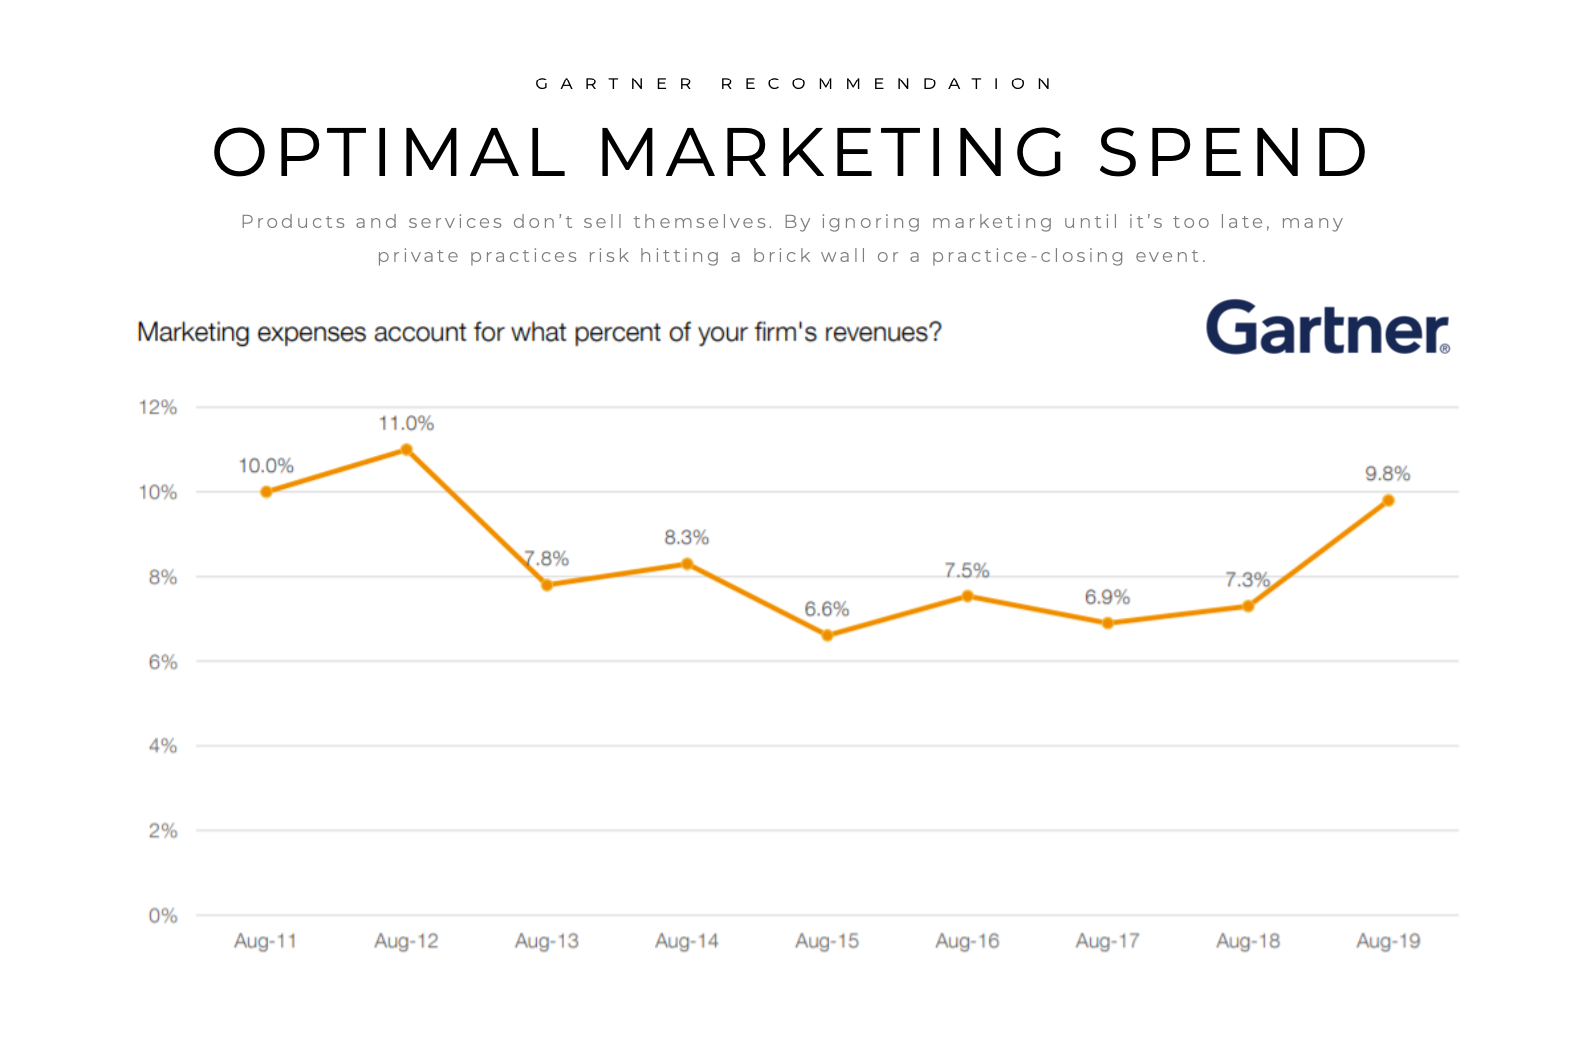 Graph showing stats from Gartner displaying marketing expenses fluctuating between 7-11%.